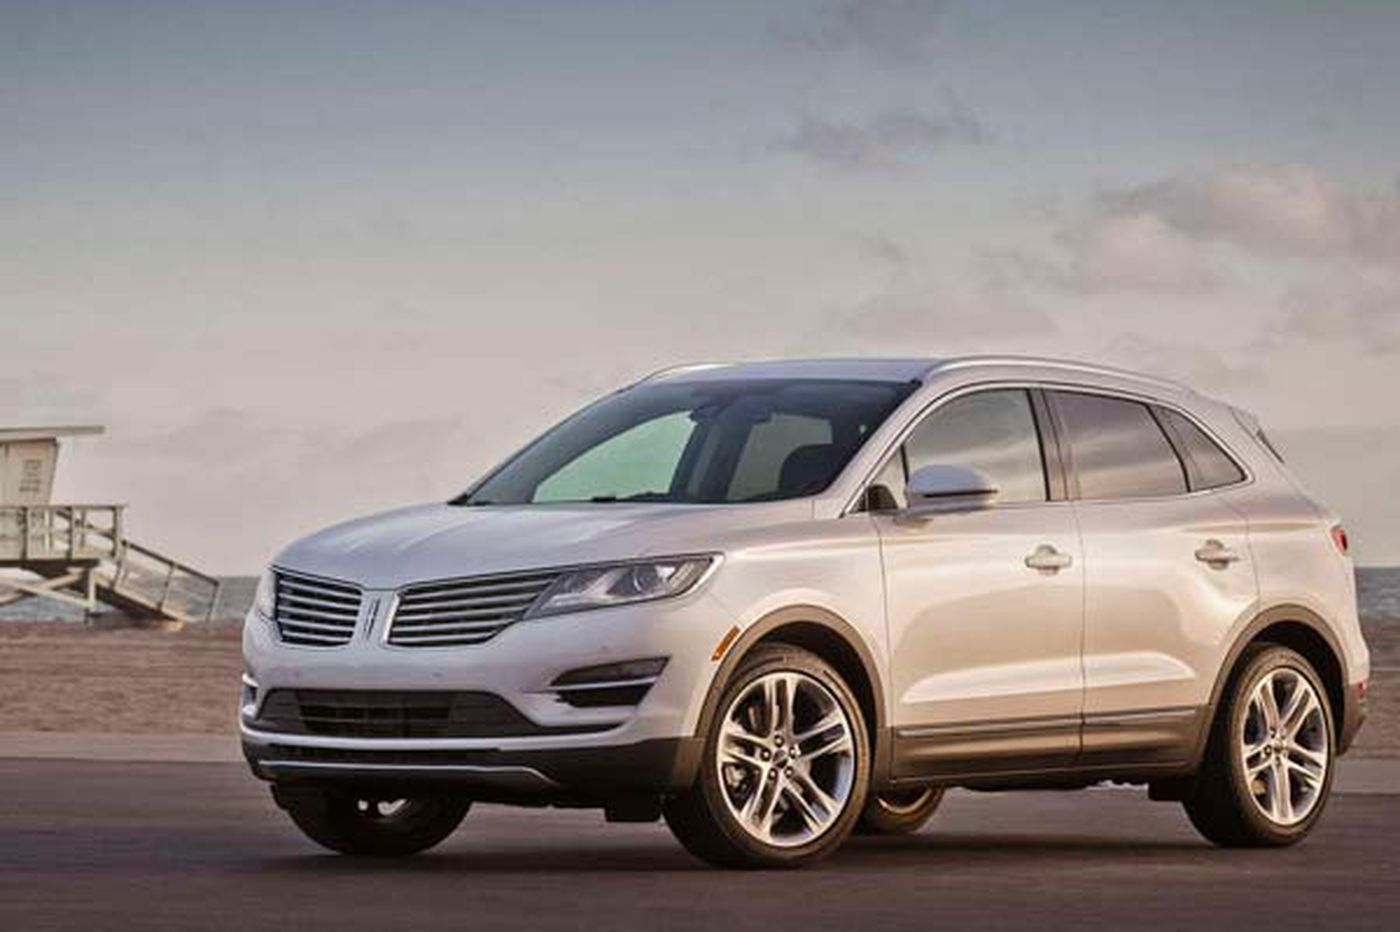 Lincoln luxury crossover scores